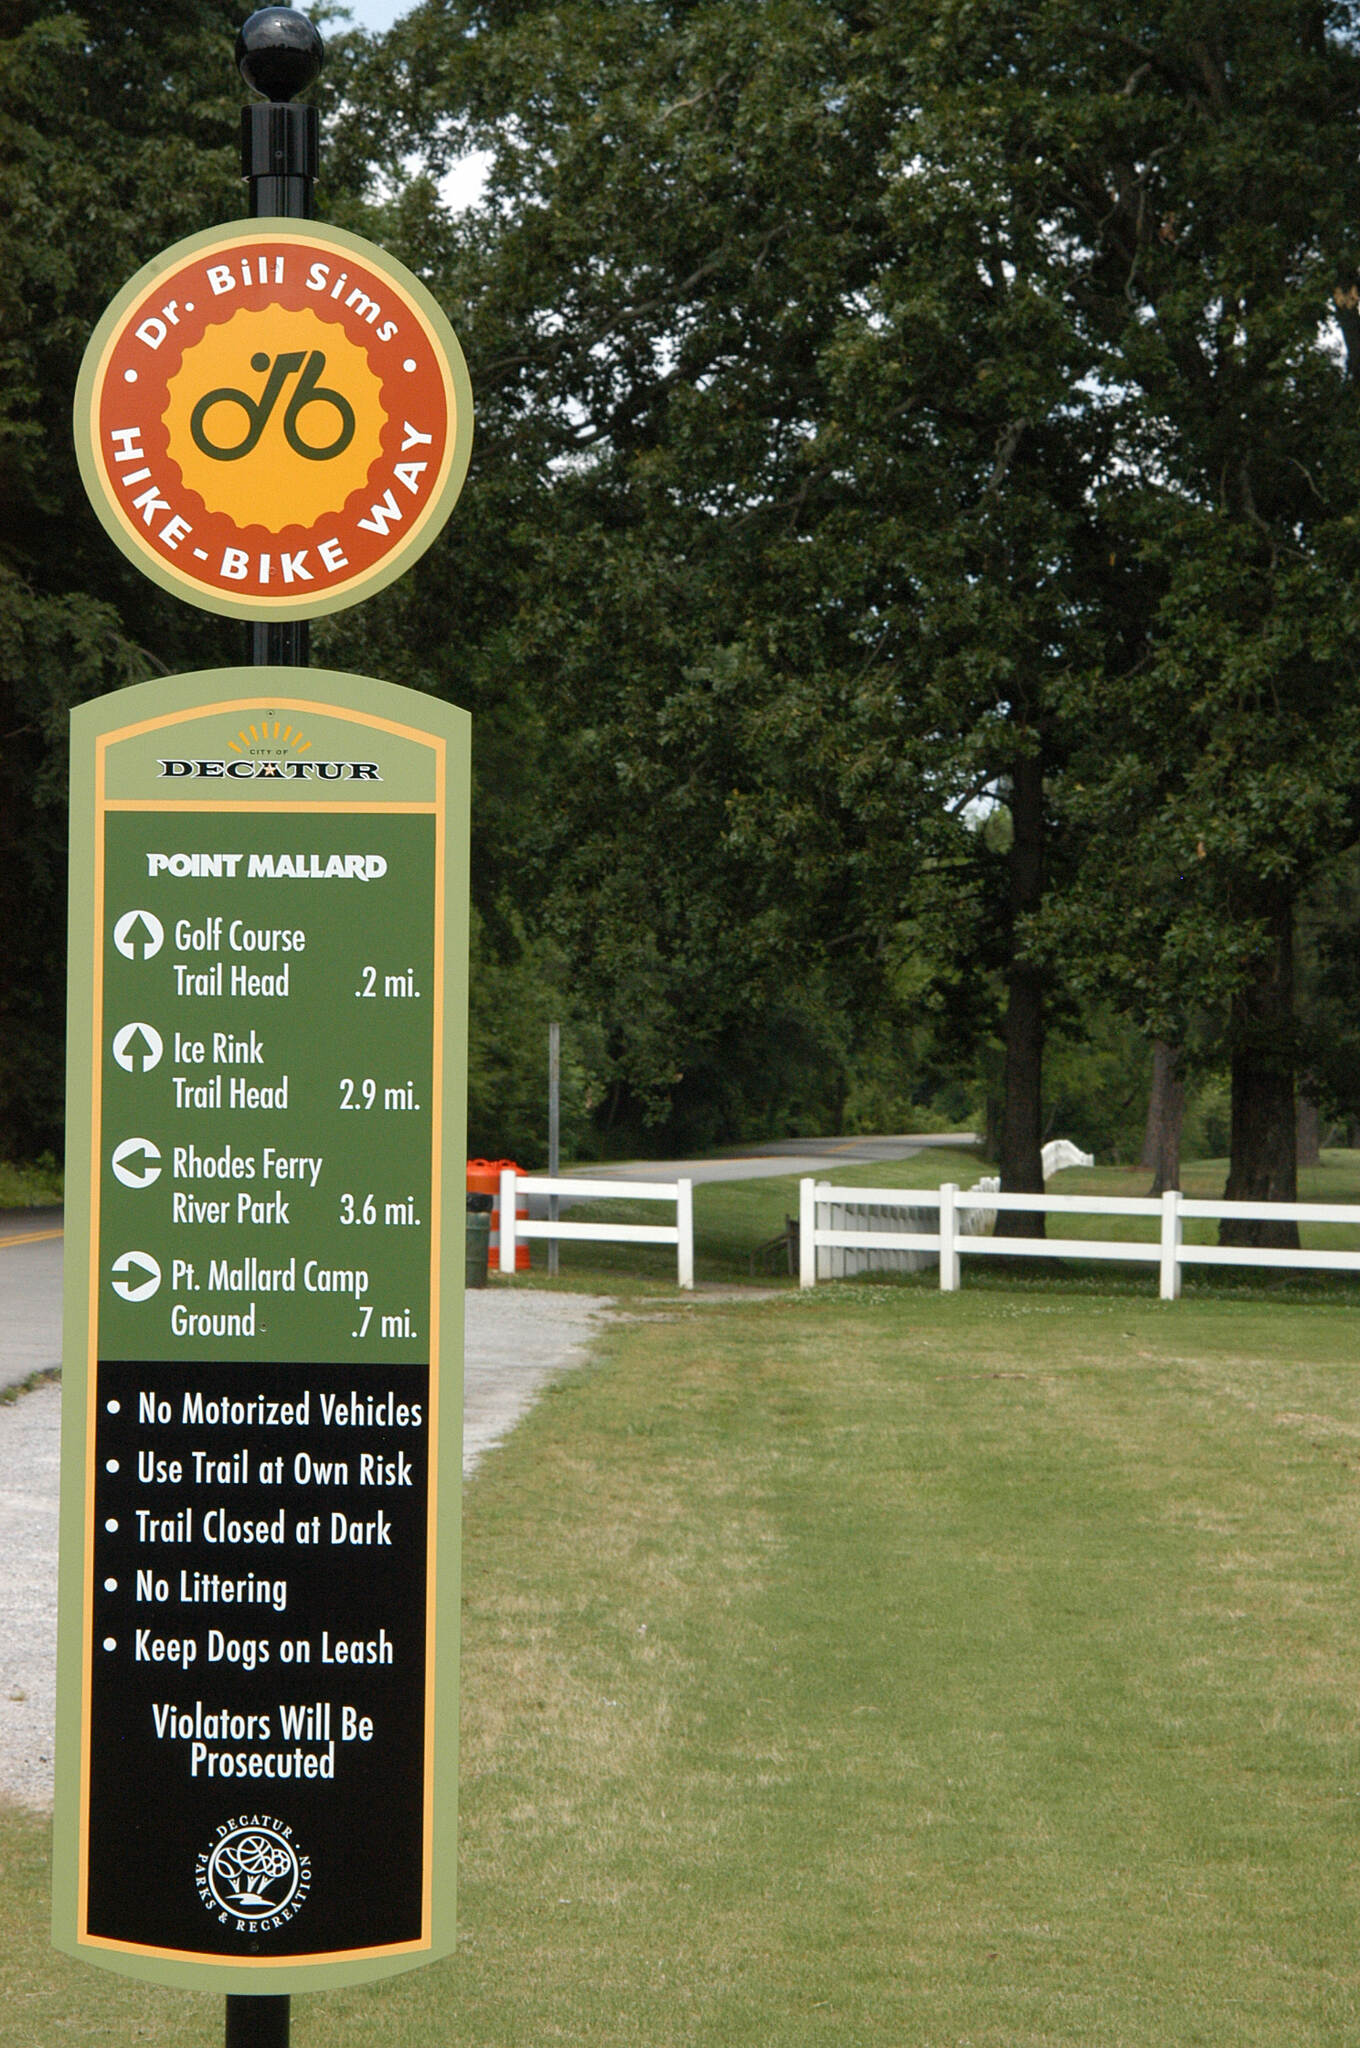 Decatur Trail Dr. Bill Sims Hike-Bike Way Point Mallard Golf Course entrance.